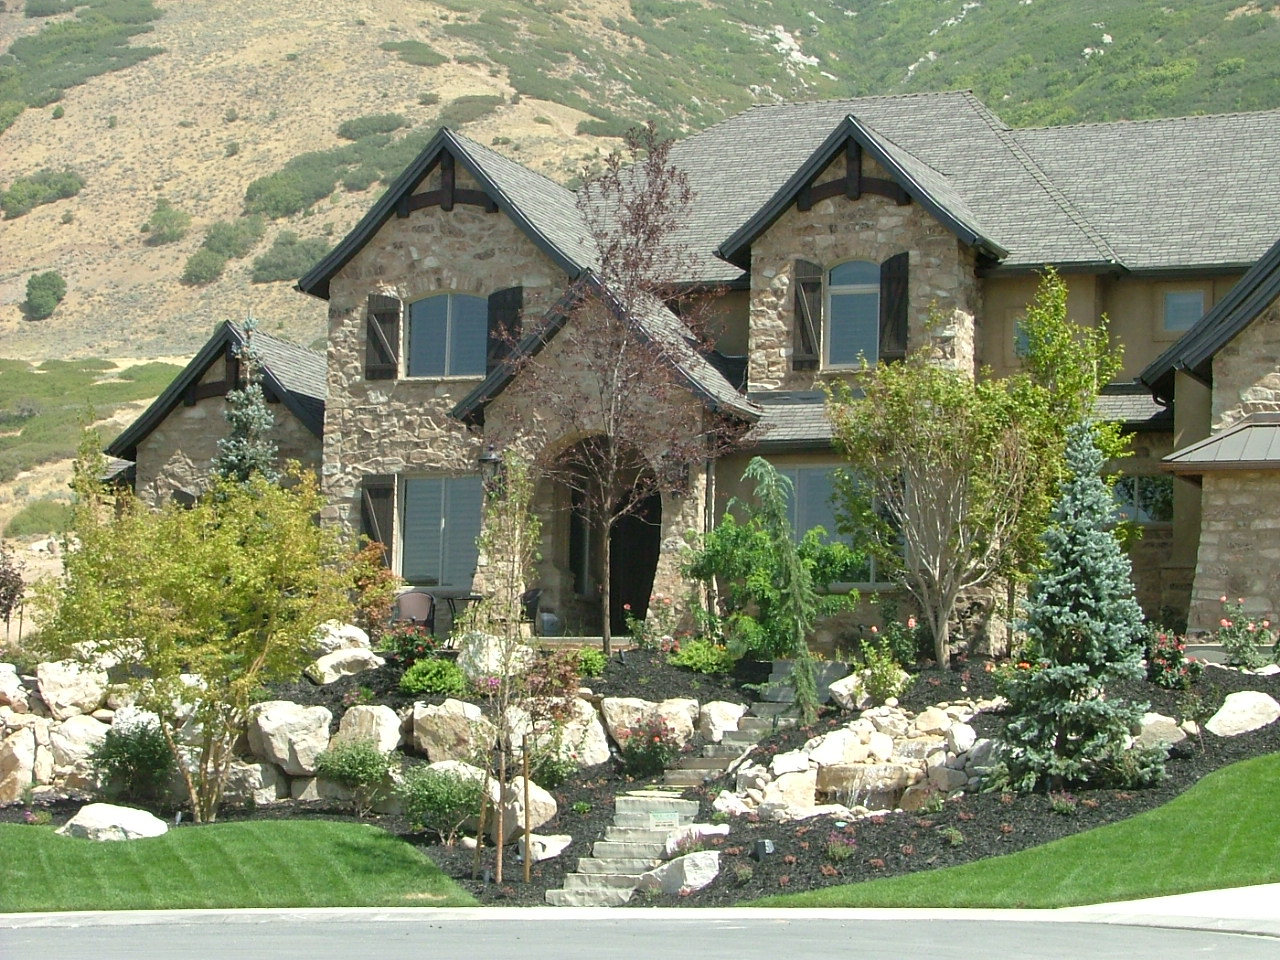 Utah Rock wall and retaining wall company, Block walls, Rockscapes, Dry  stack walls, Cement walls in Utah | Chris Jensen Landscaping in Salt lake  city and ... - Utah Rock Wall And Retaining Wall Company, Block Walls, Rockscapes